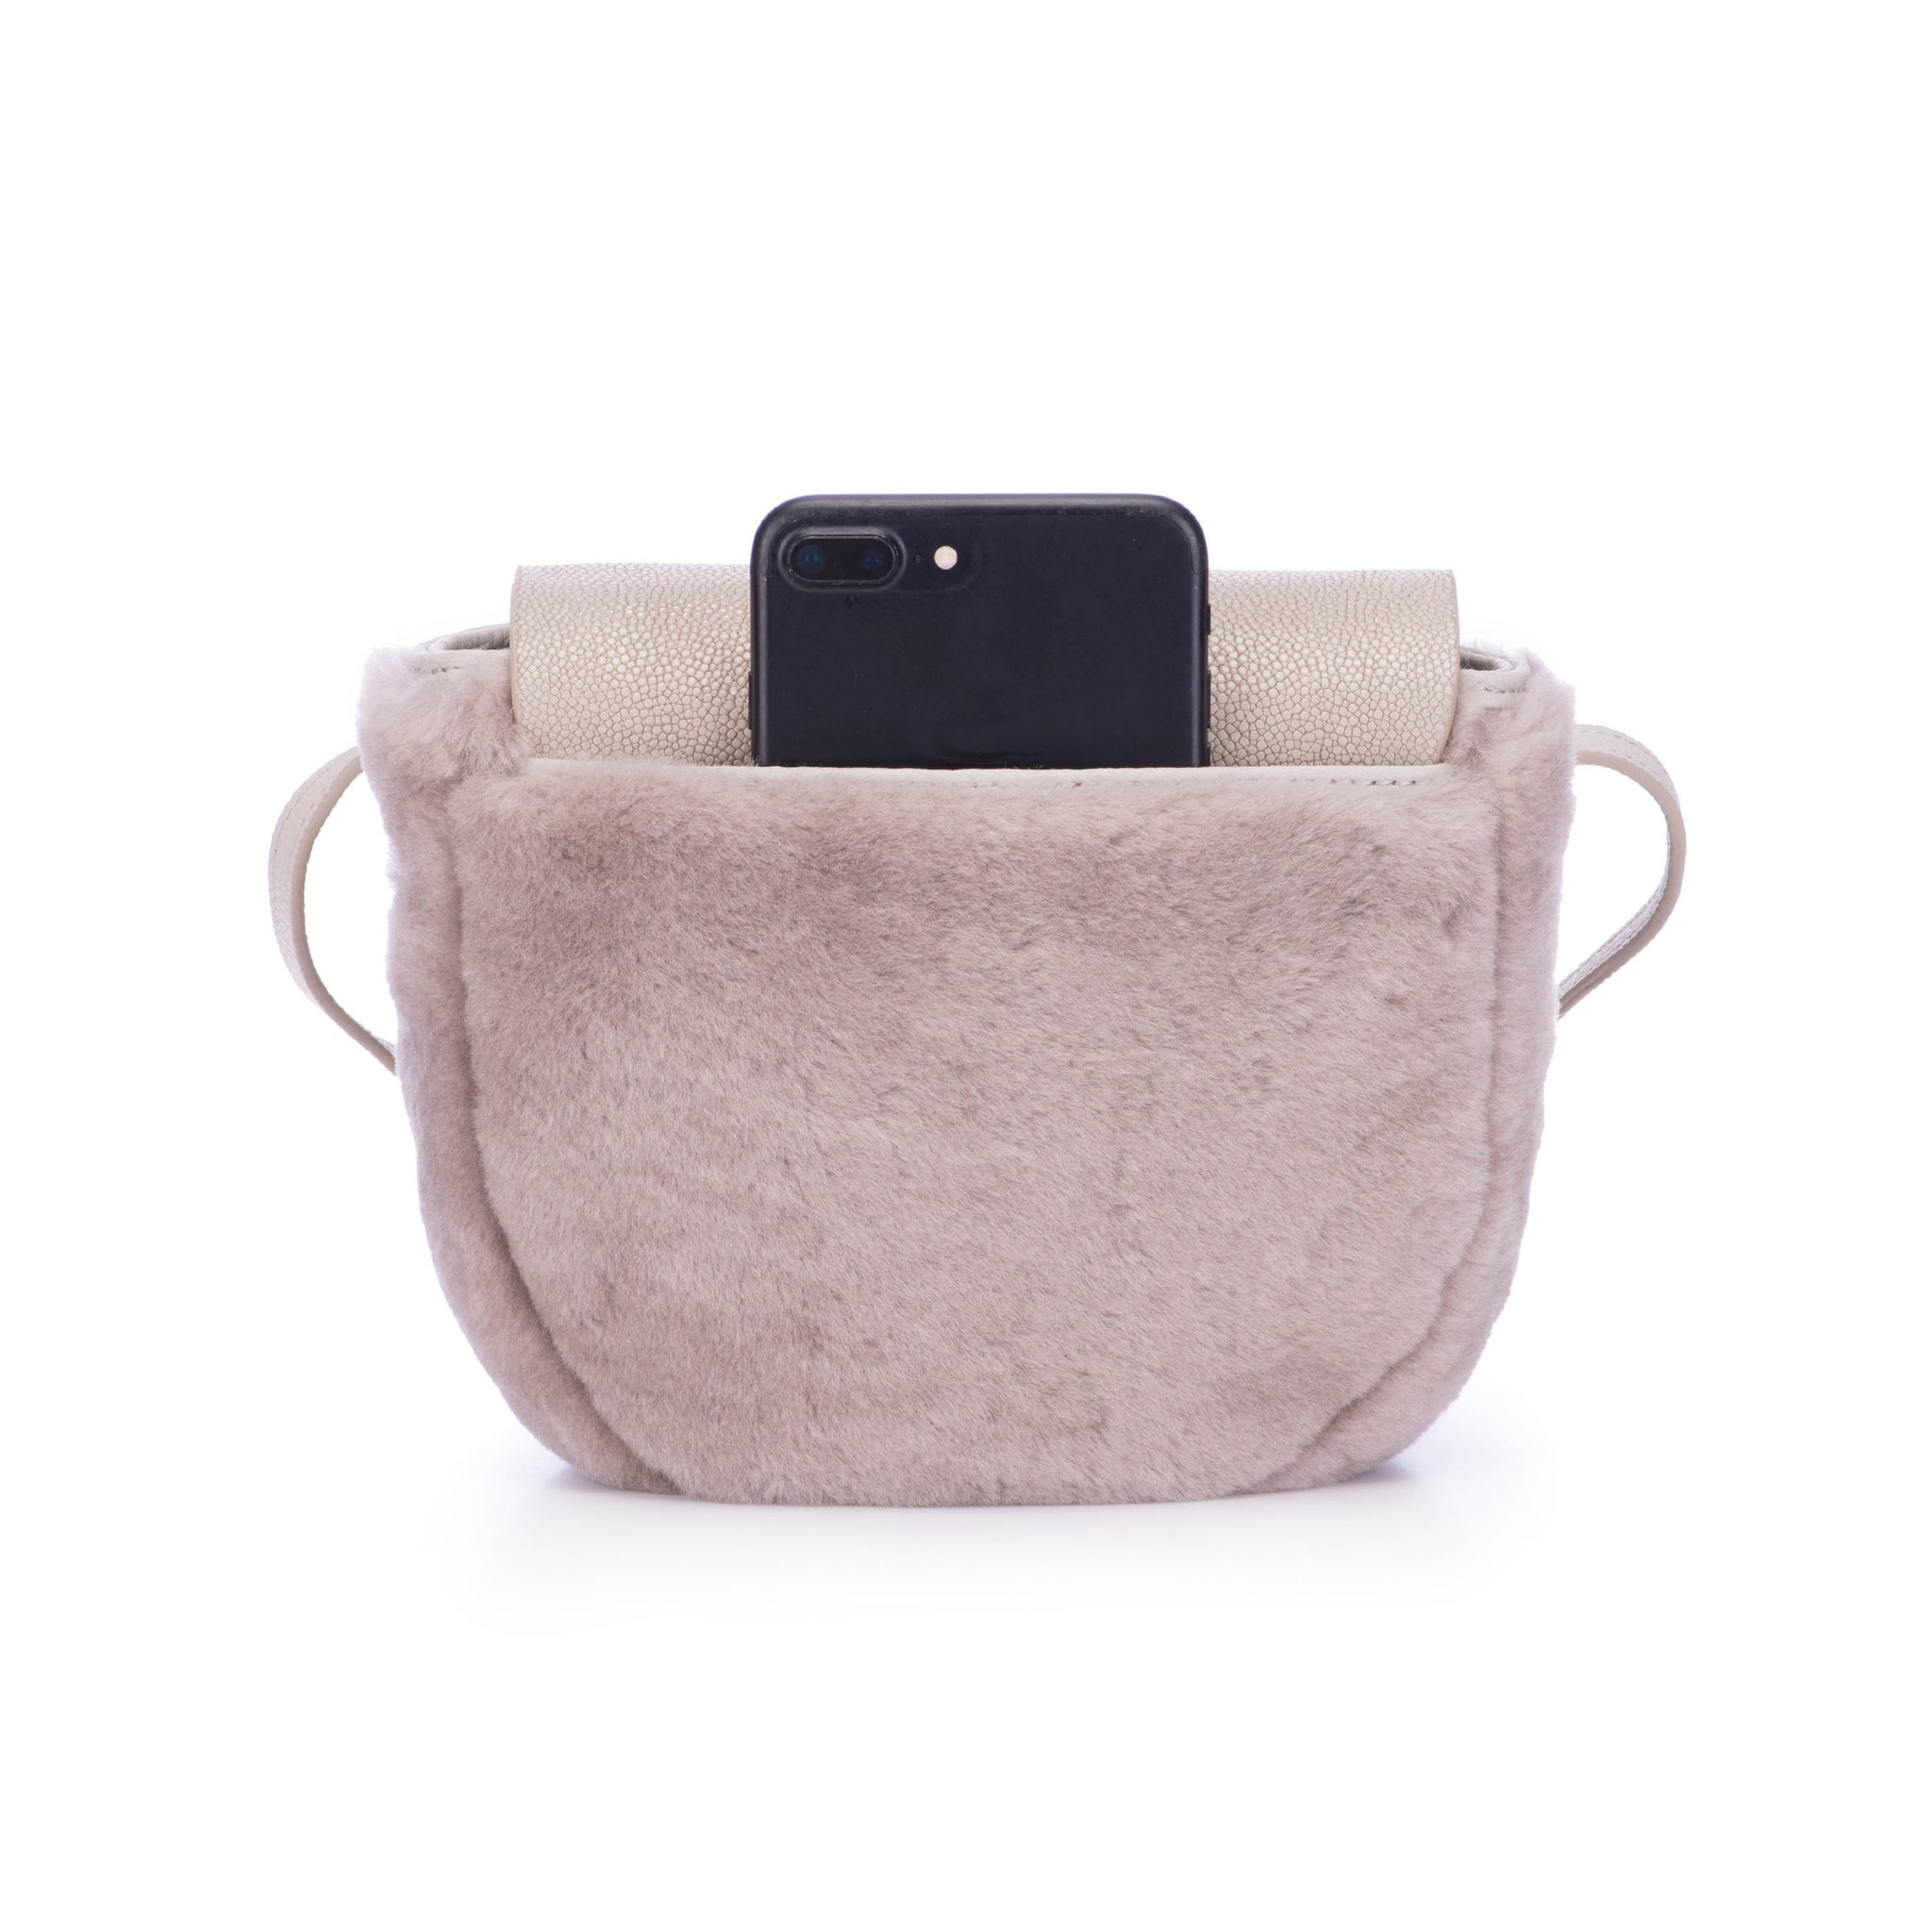 Light Gray Shearling And Cement Shagreen Front Cross Body Bag With Tassel Back View Brooke - Vivo Direct